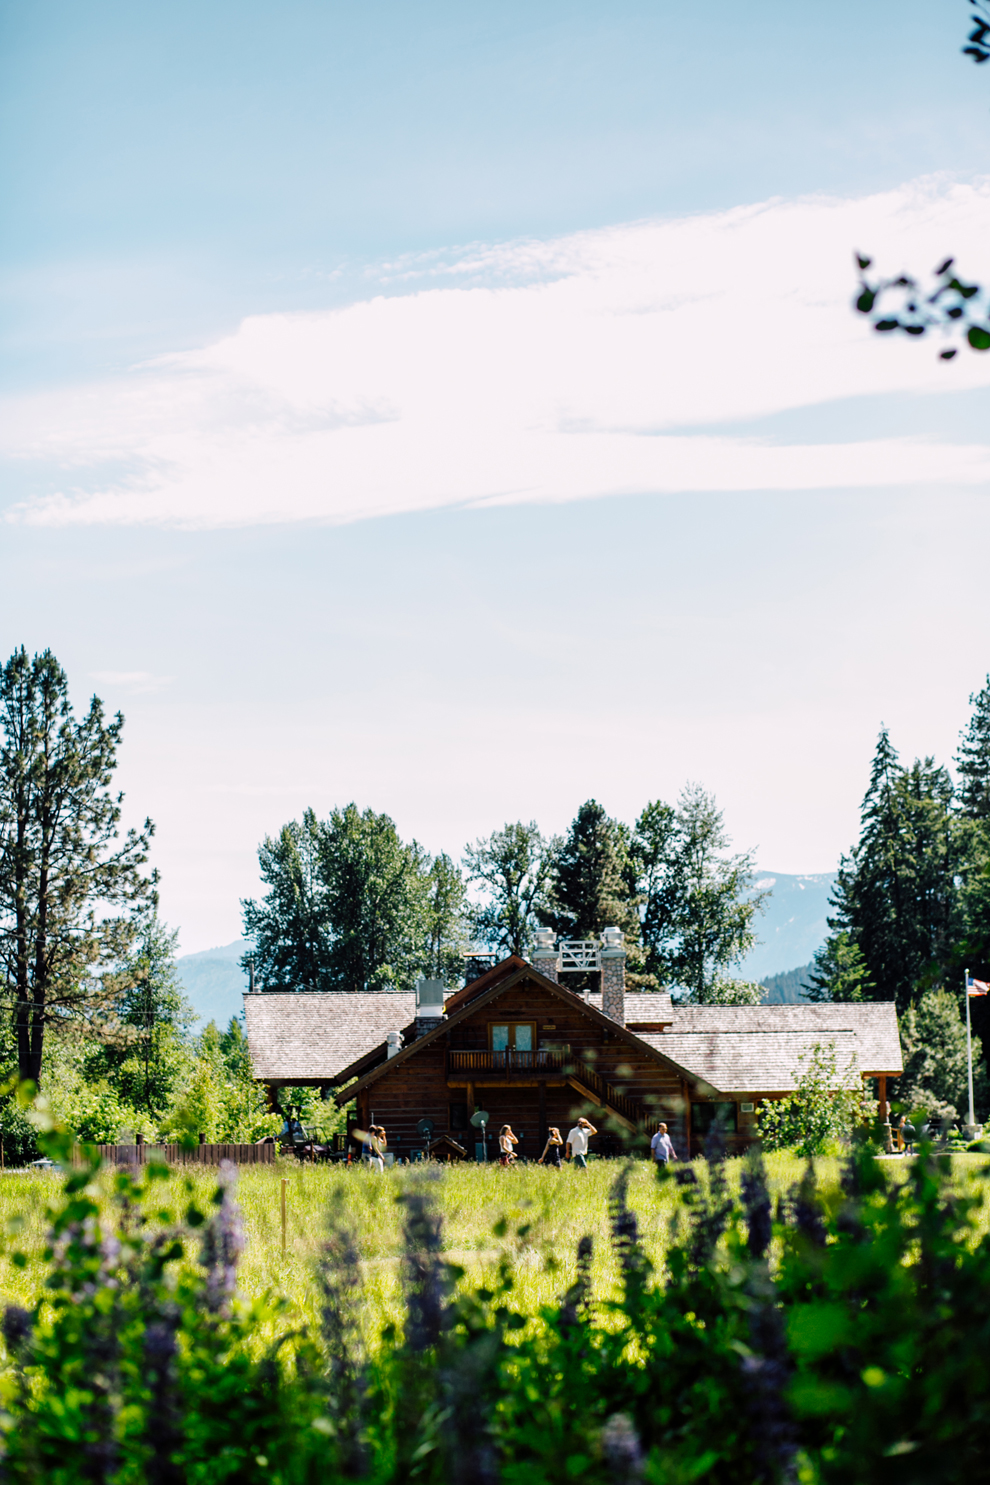 058-leavenworth-mountain-springs-lodge-wedding-karena-saul-katheryn-moran-photography.jpg